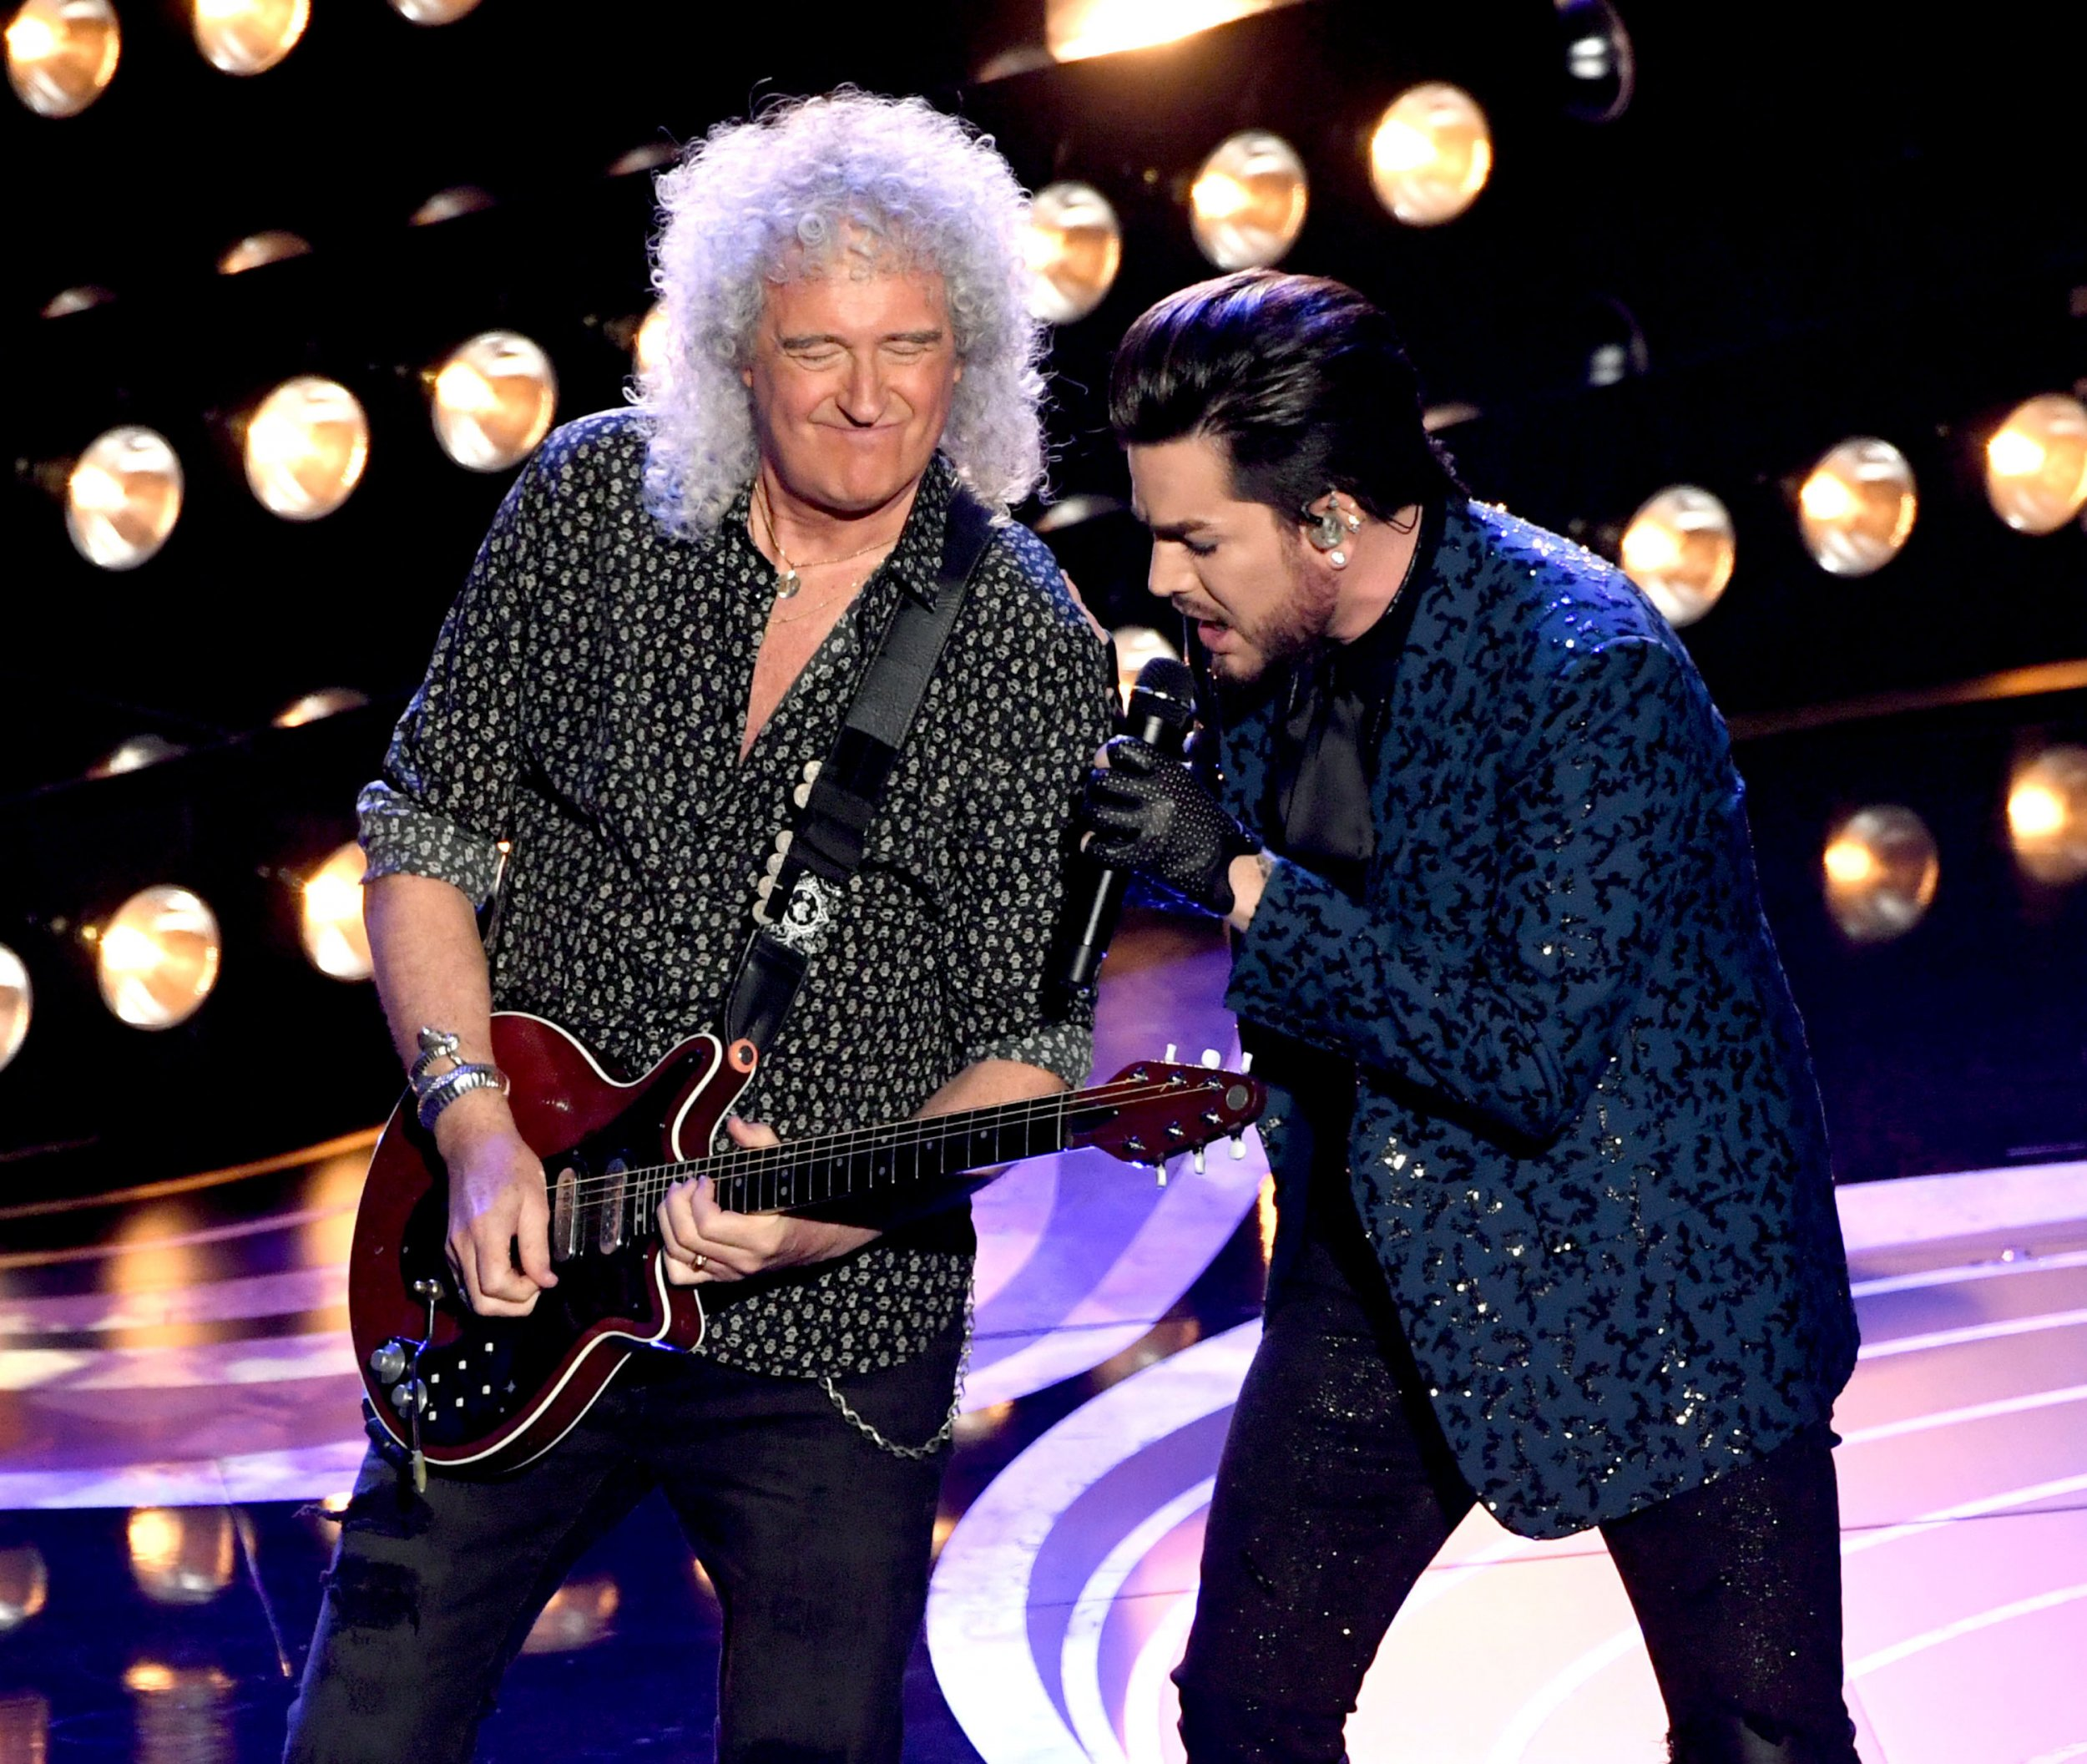 Is Adam Lambert A Member of Queen? Former 'American Idol' Runner-Up Is The Lead Vocalist For Iconic '70s Rock Band